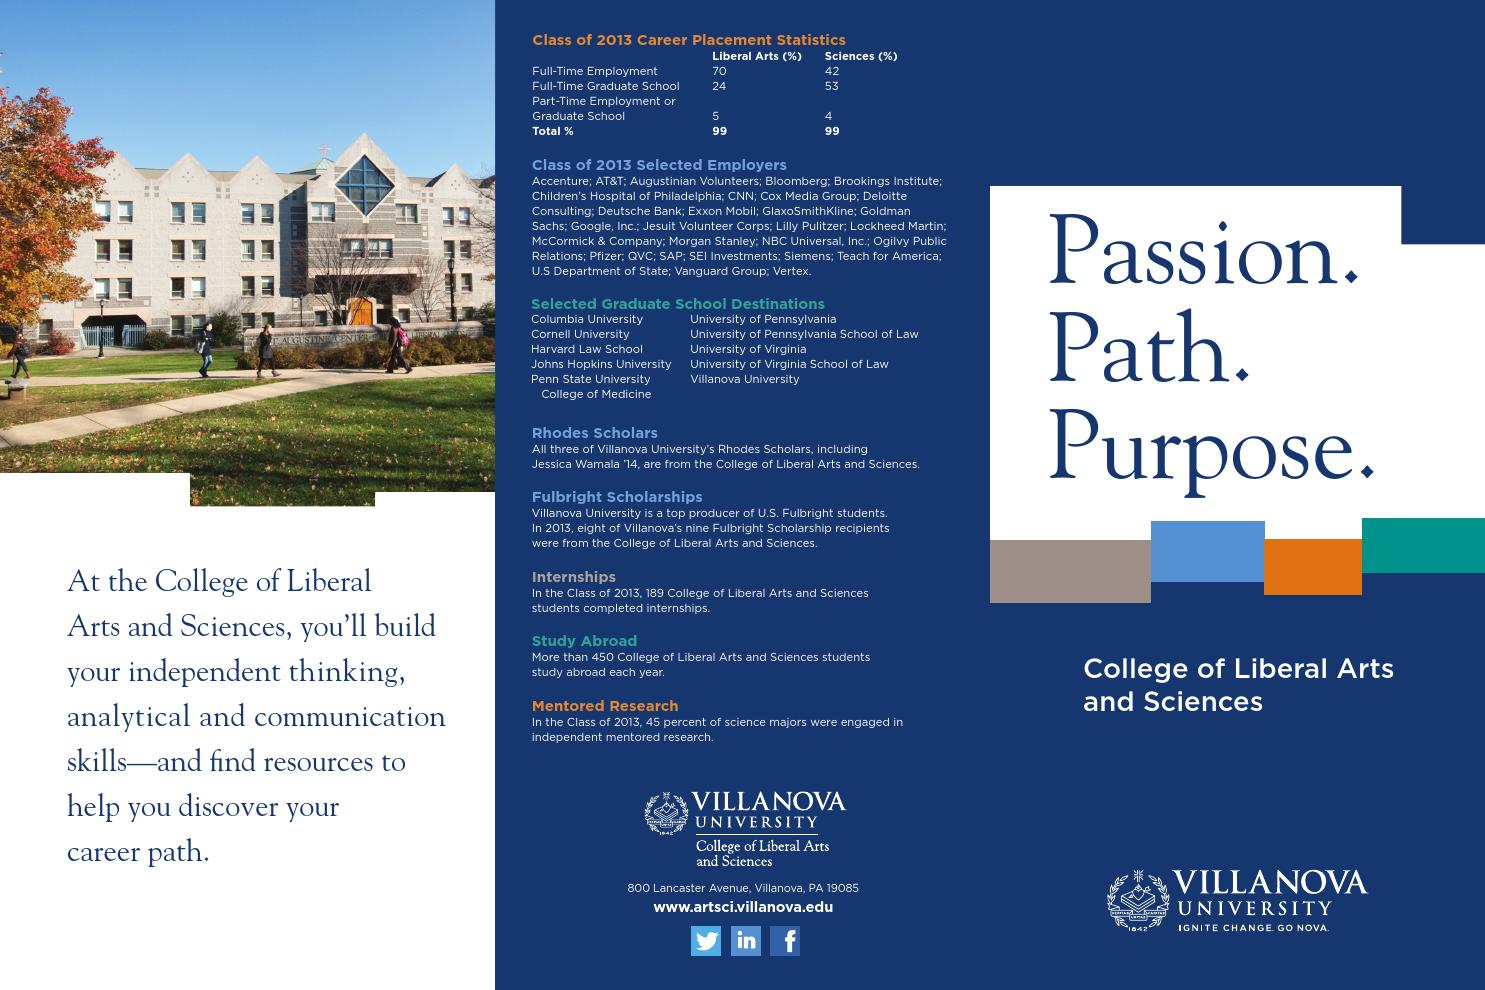 Passion, Path and Purpose - 2014 by Villanova University College of